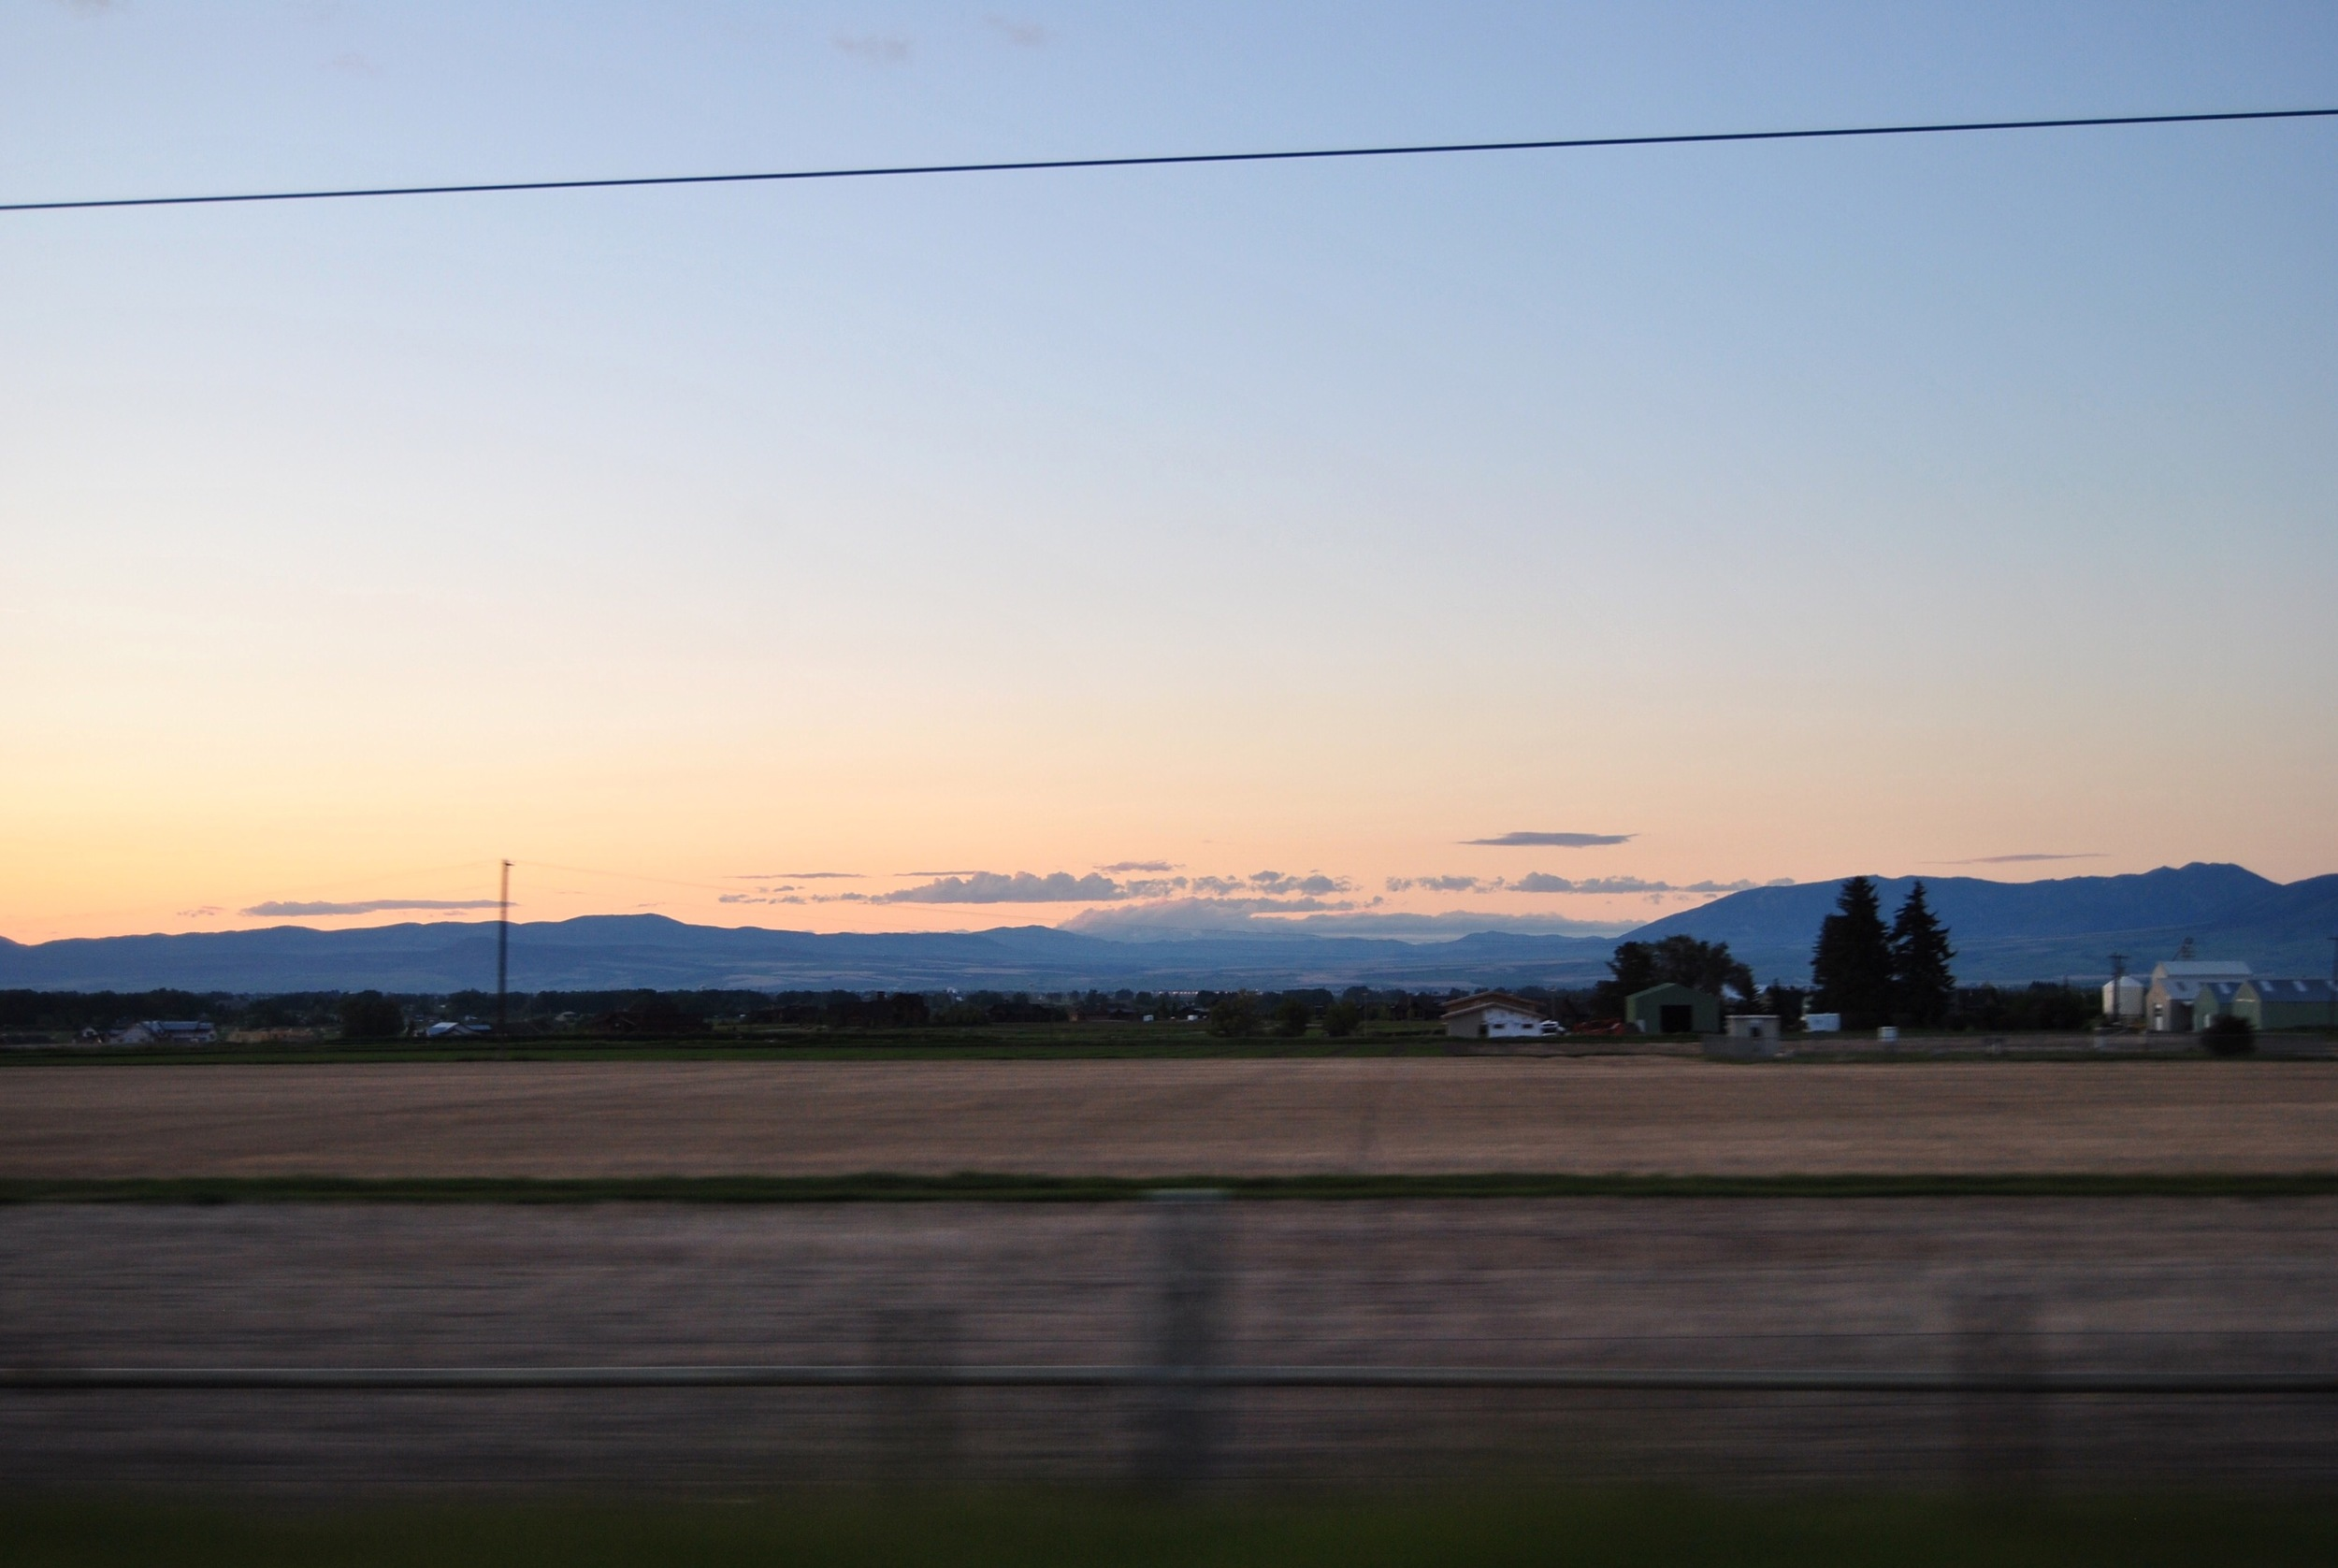 The distant sunset (there's so little to obscure the sun in Montana that the sun set reeeaaaally far away) and blue mountains as we passed through Bozeman looked like a painted backdrop. Some people get to watch this sunset every night. How does anybody get any work done around here?